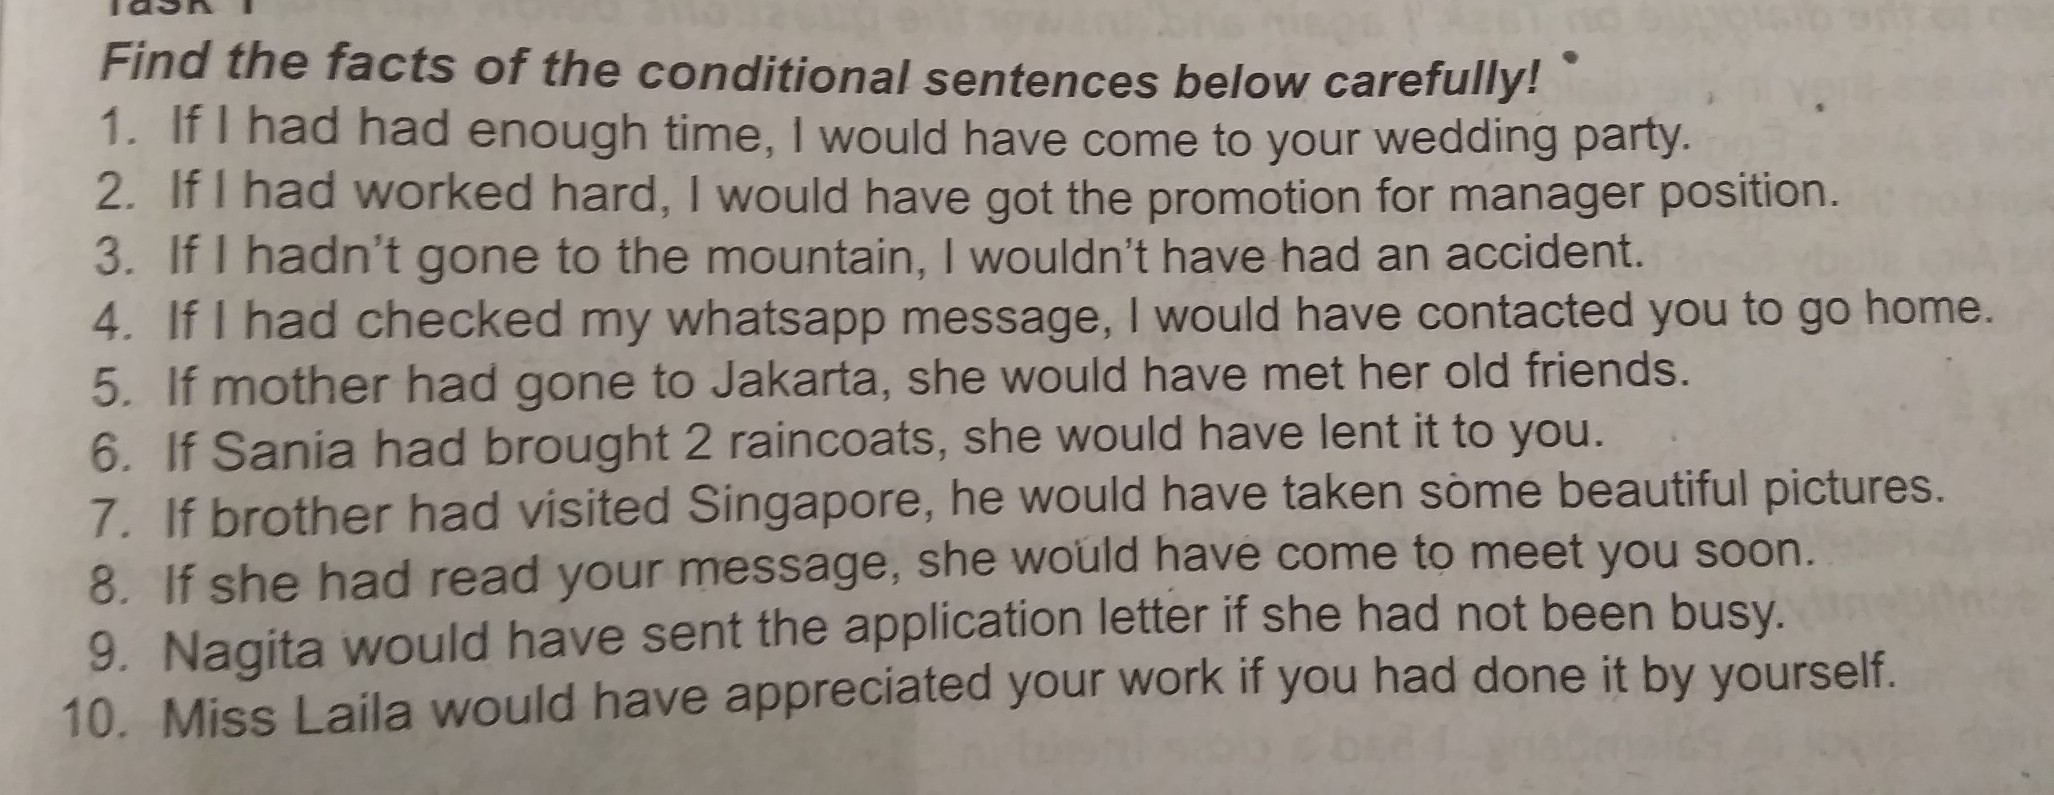 Find The Fact Of The Conditional Sentence Below Carefully Brainly